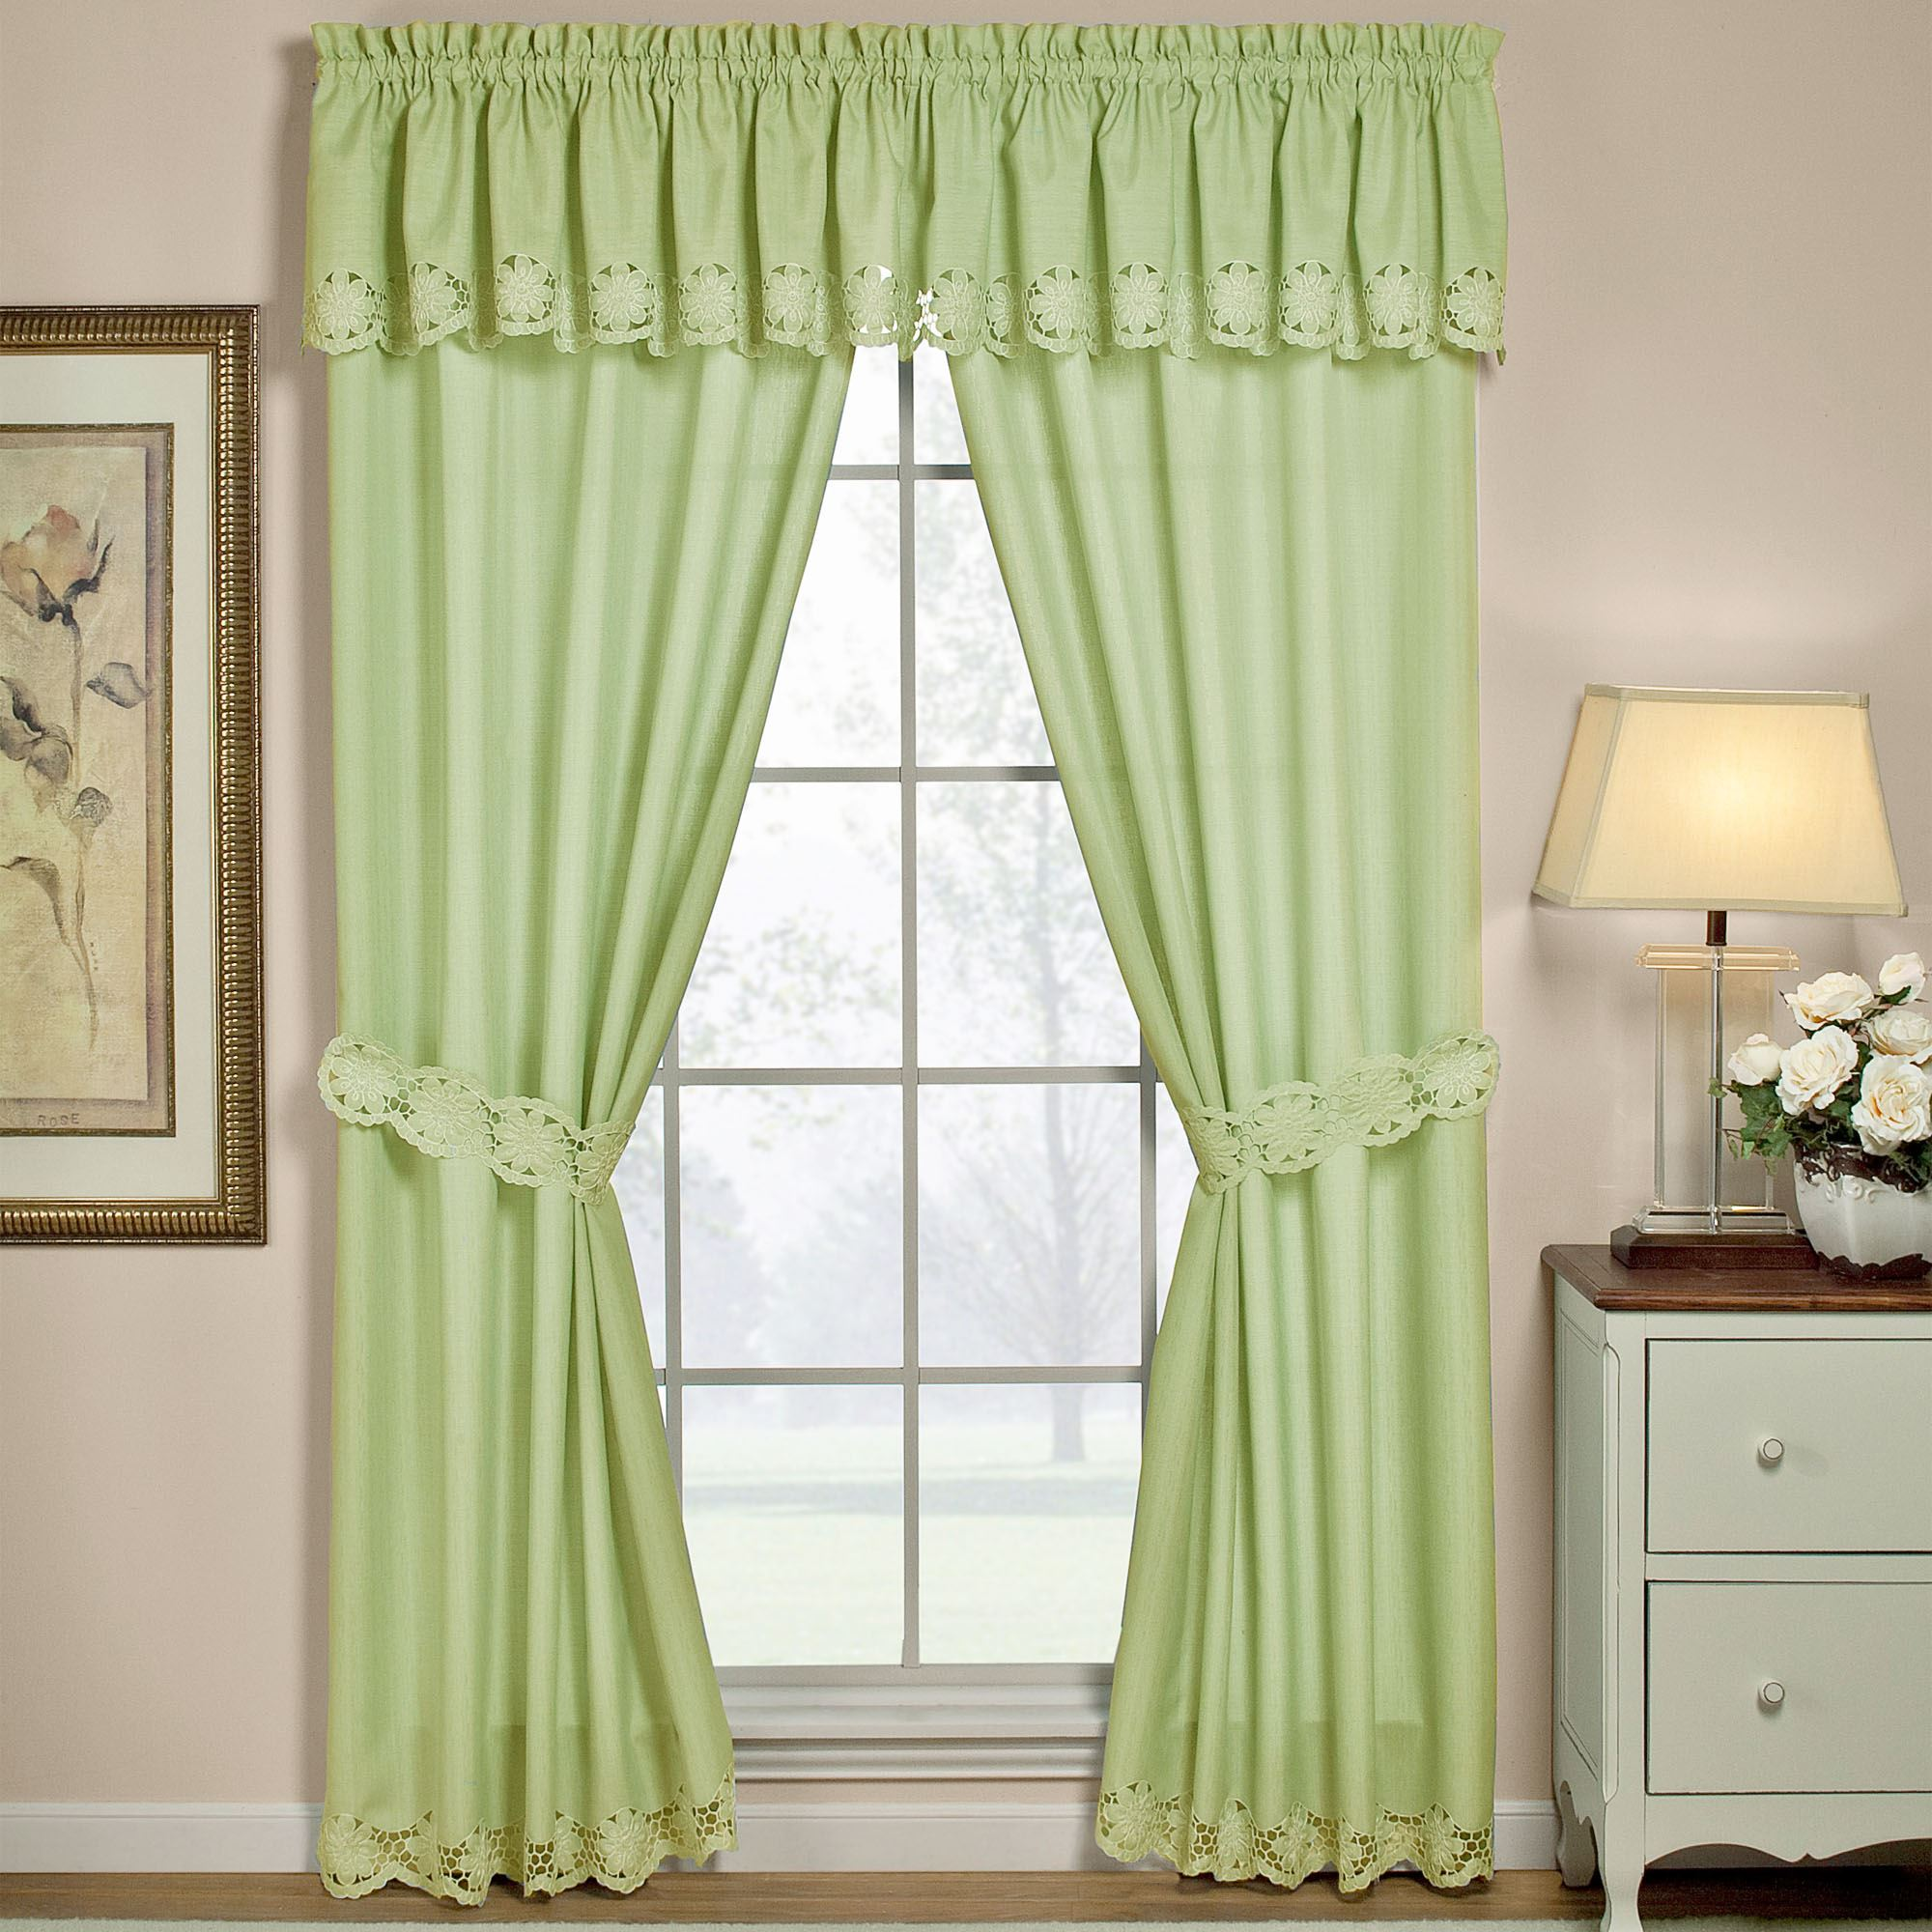 jacquard treatments p panel treatment expand window to damask and tailored curtain click curtains mercato